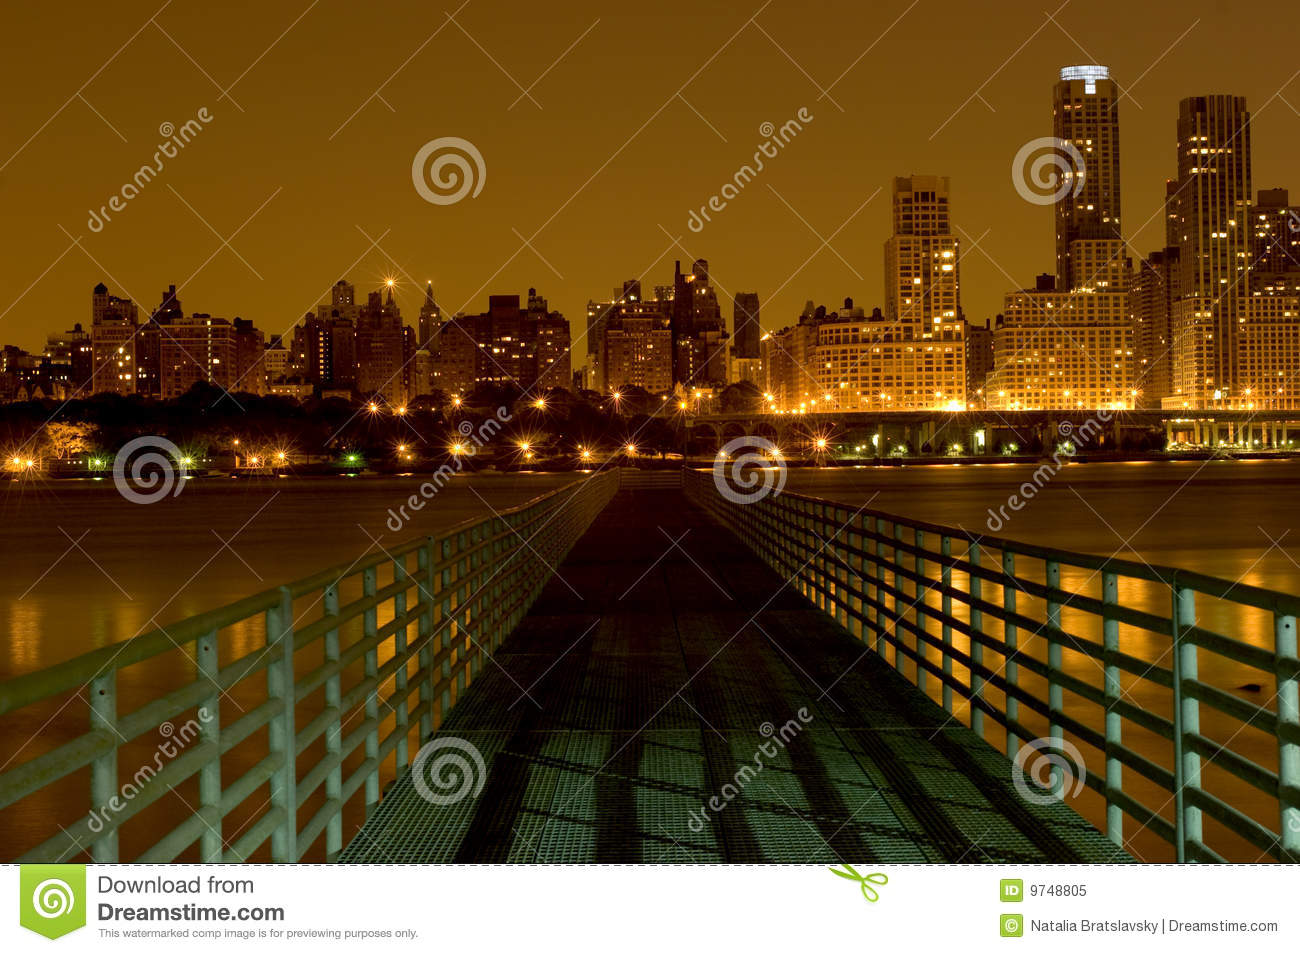 Puente a Manhattan